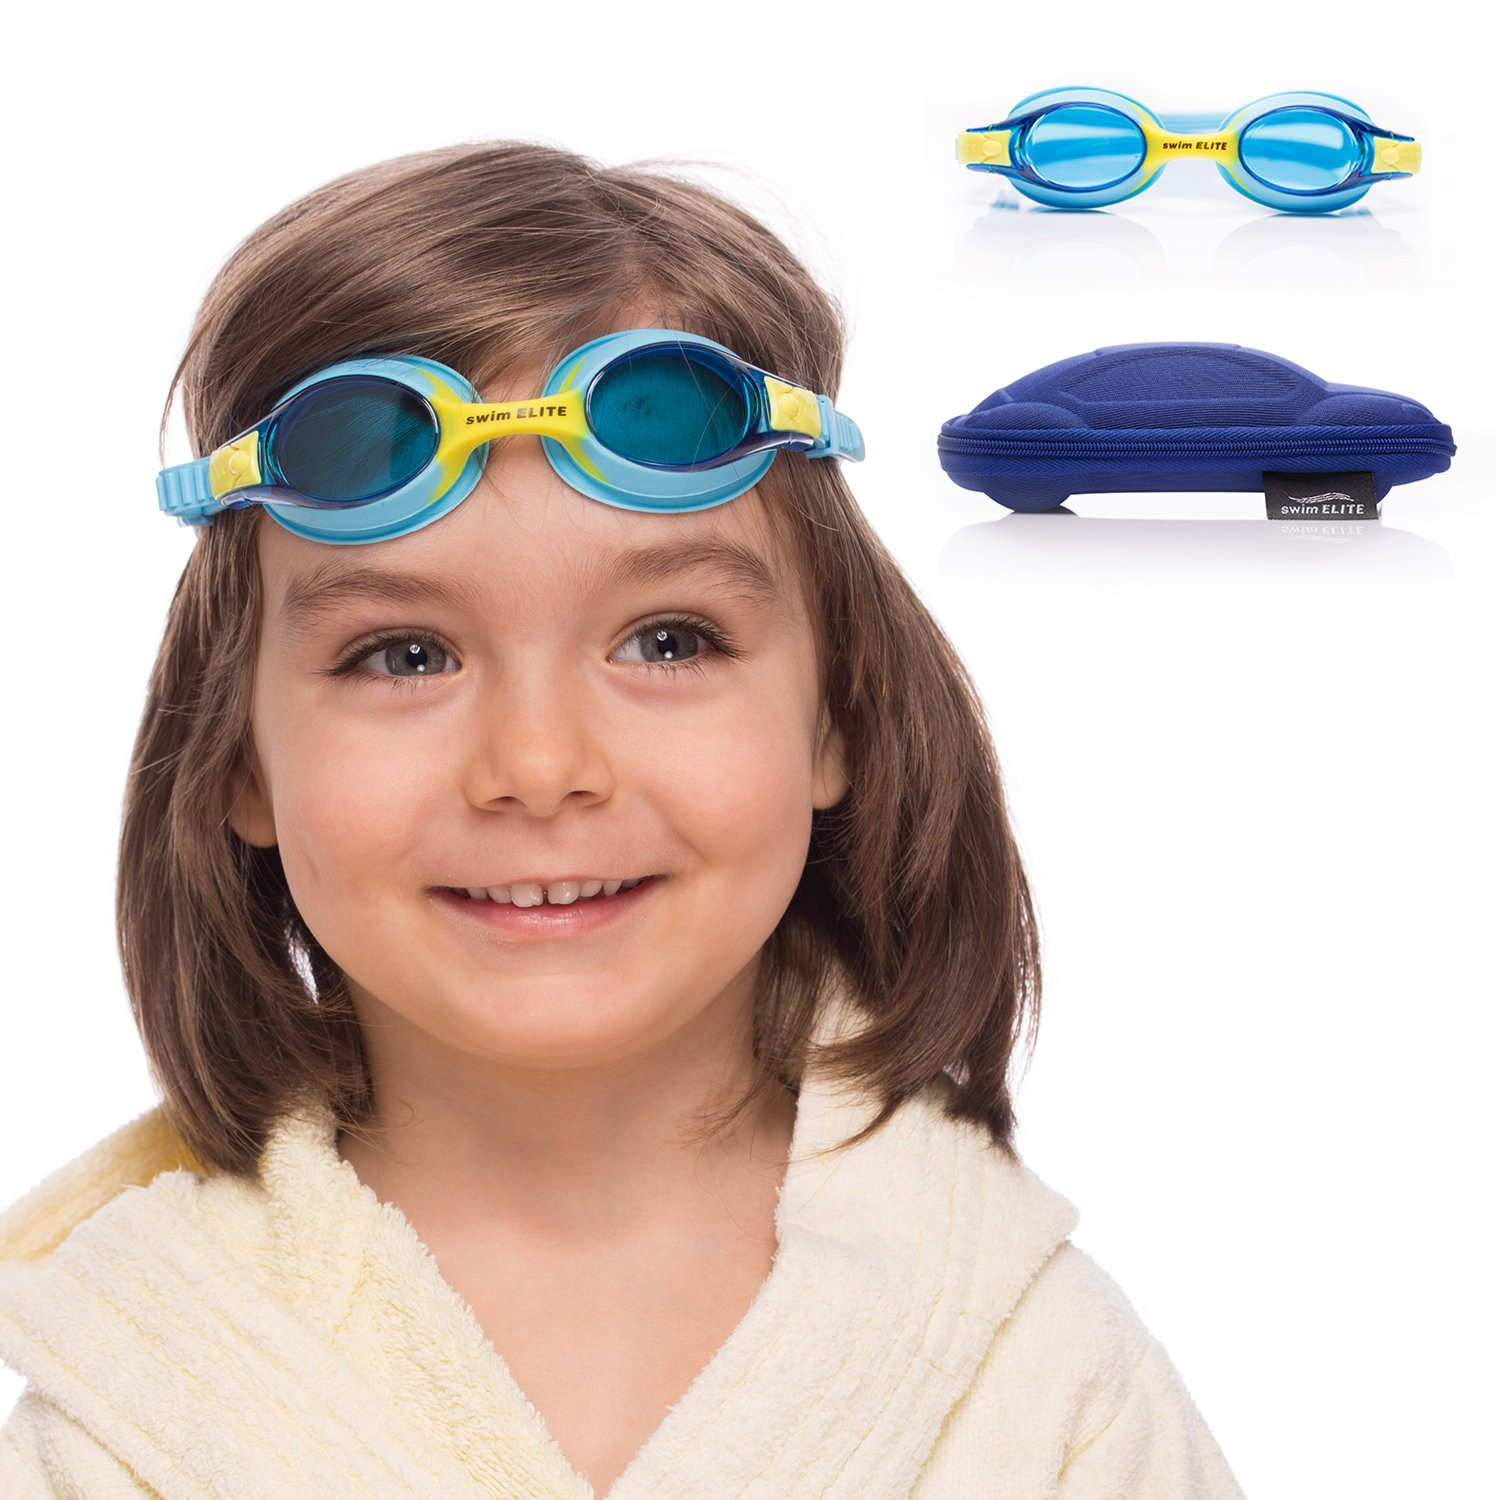 Kids Swim Goggles || Swimming Goggles for Kids (Age 2-8 Years Old) with Fun Car Hardcase for Easy Transportation || Cushioned Frames || Anti Fog Lenses || UV Protection || by SWIM ELITE